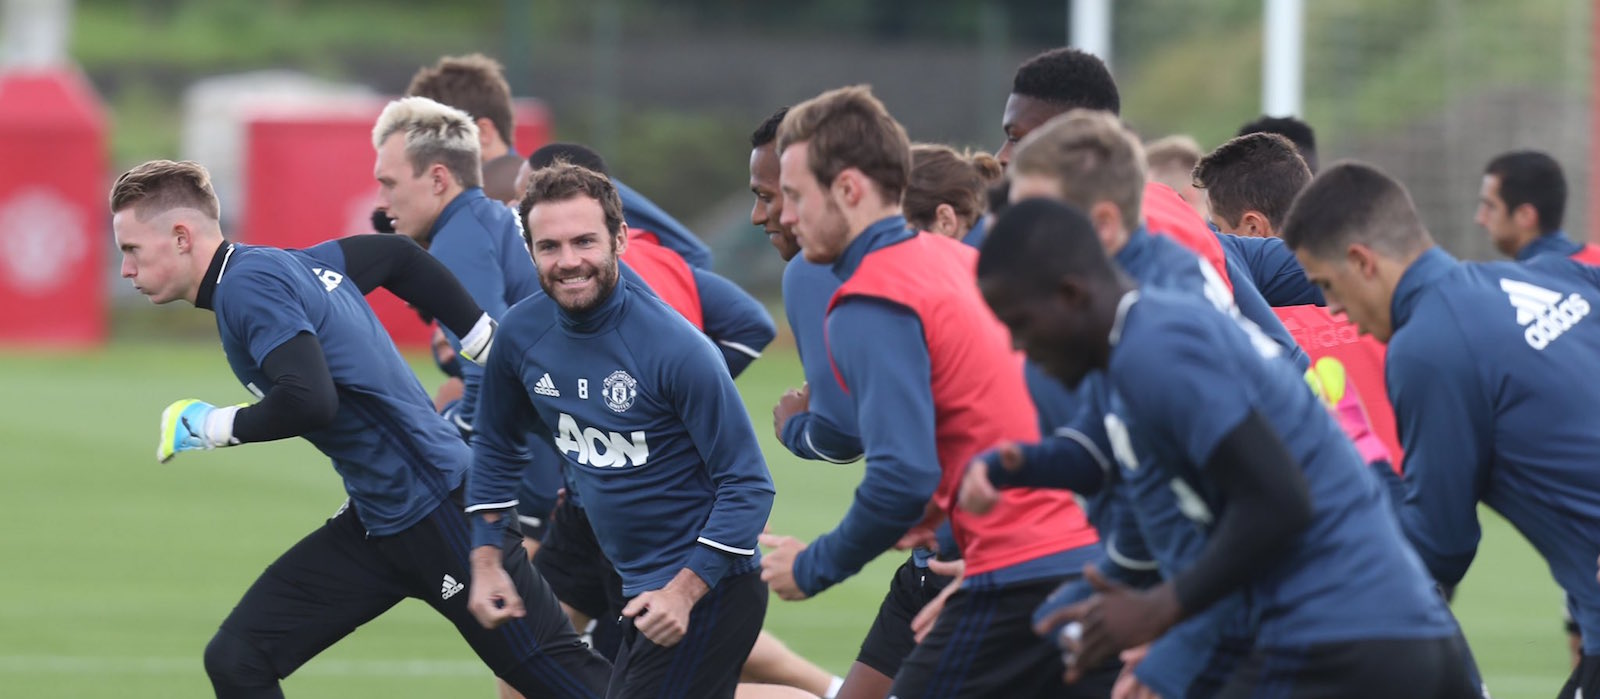 Manchester United set to begin pre-season preparations tomorrow